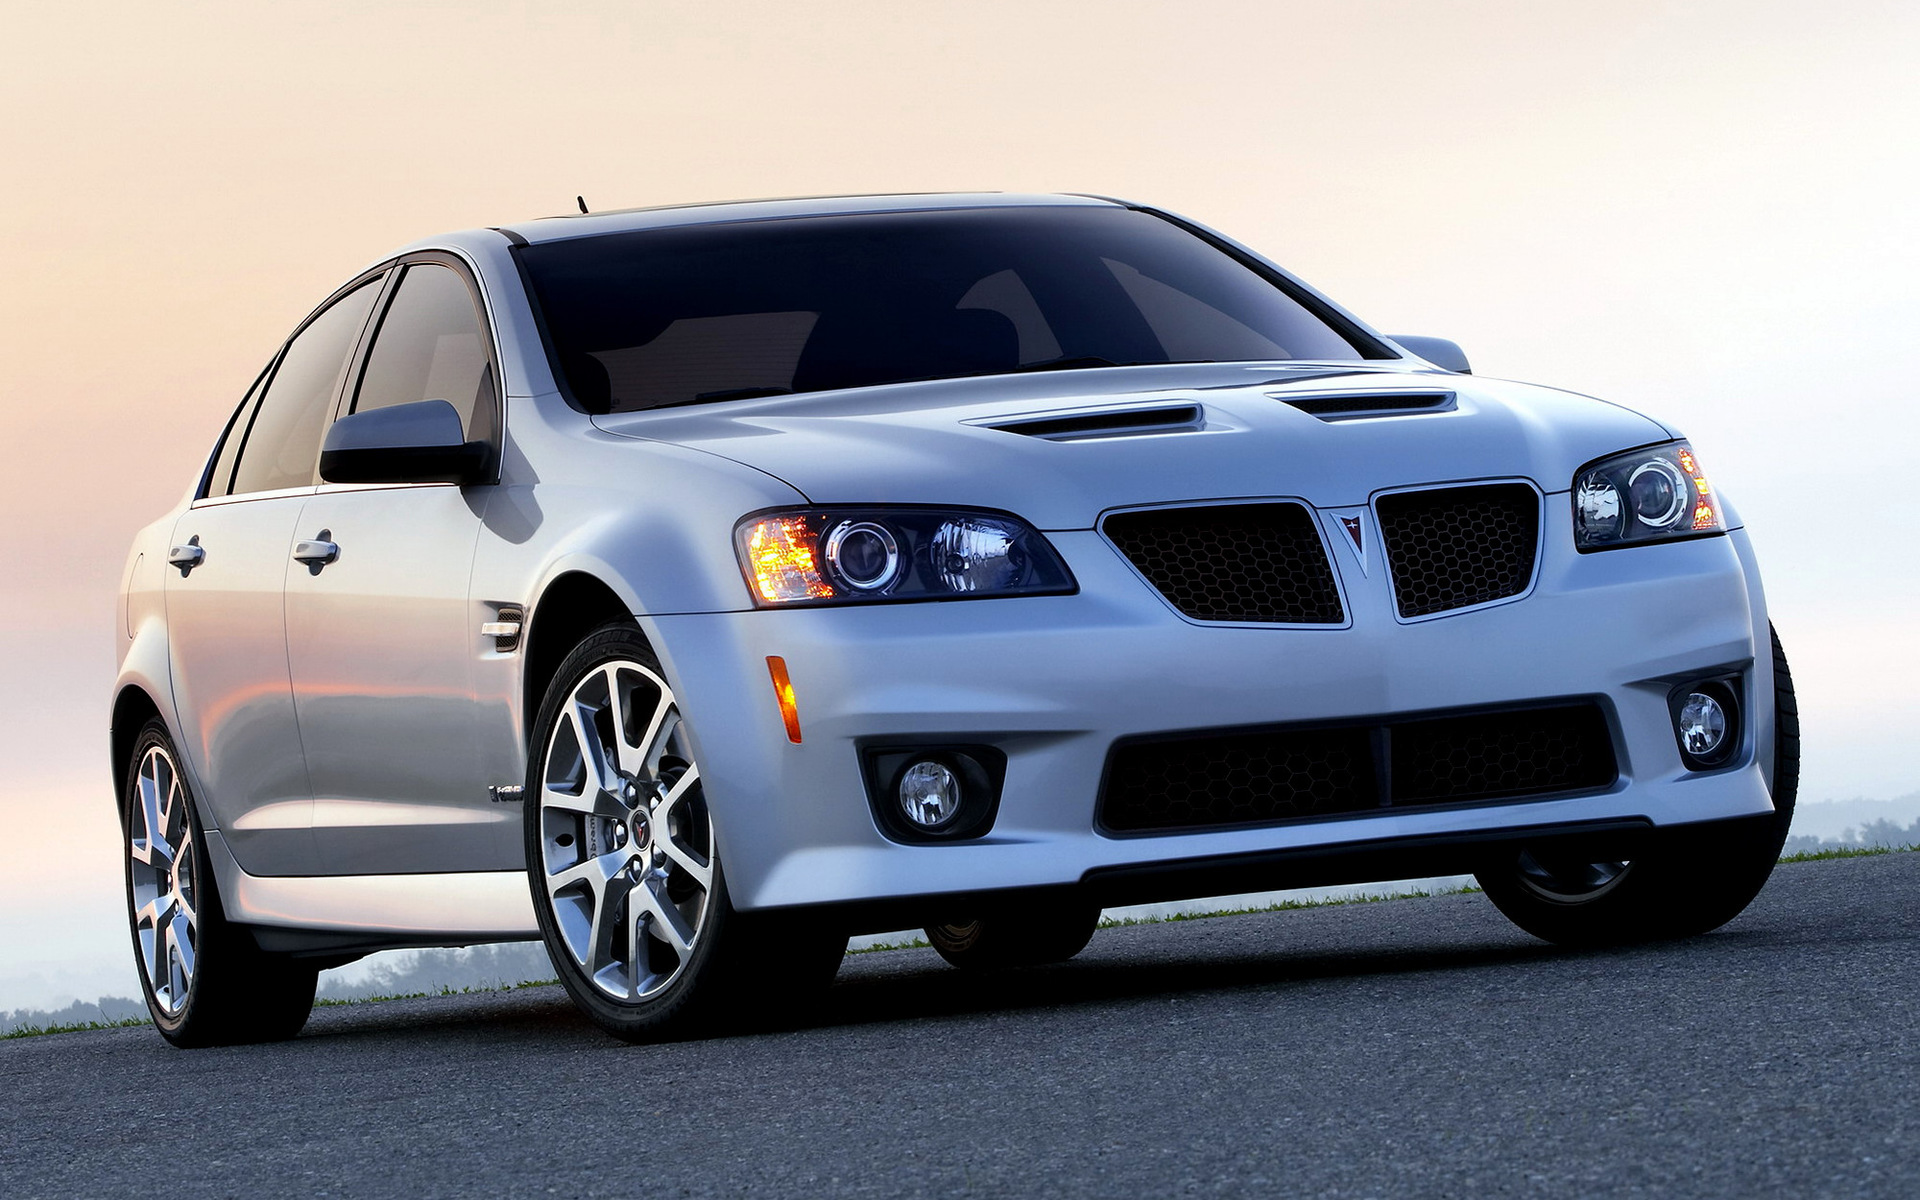 Pontiac G8 GXP (2008) Wallpapers and HD Images - Car Pixel